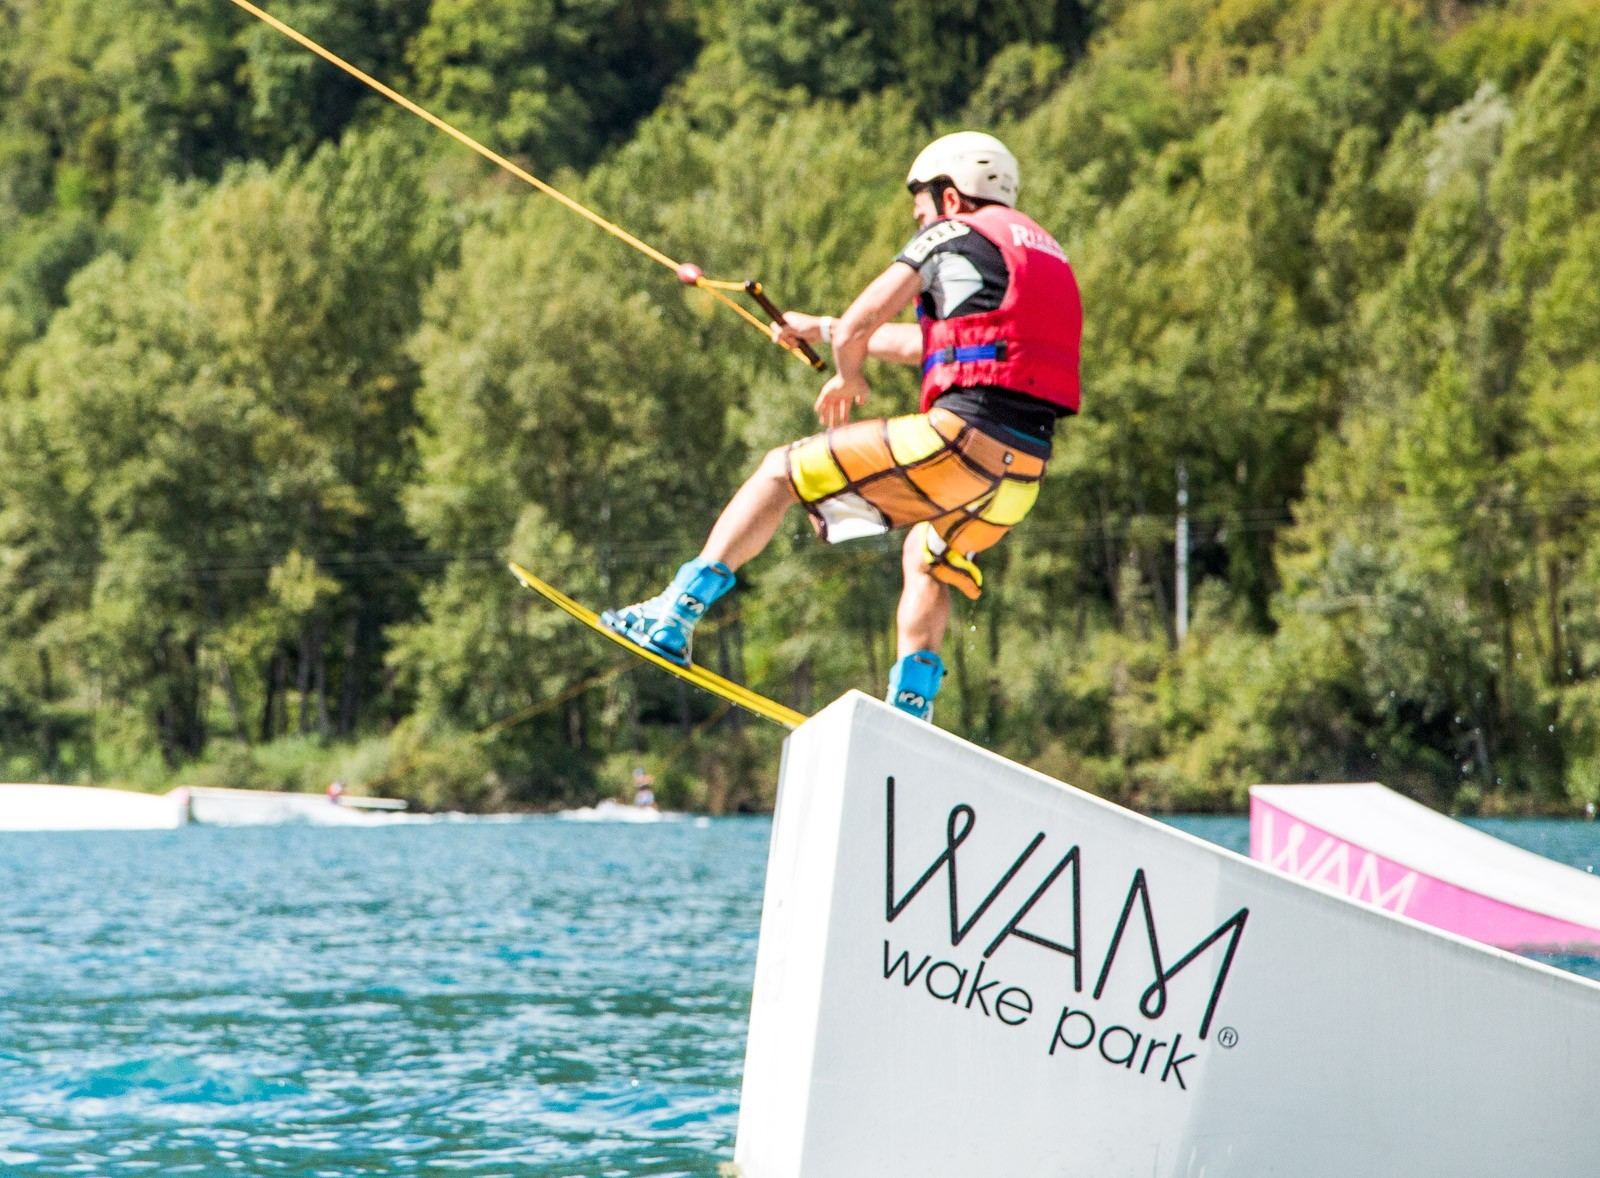 Wakeboard - Wake park cable en savoie